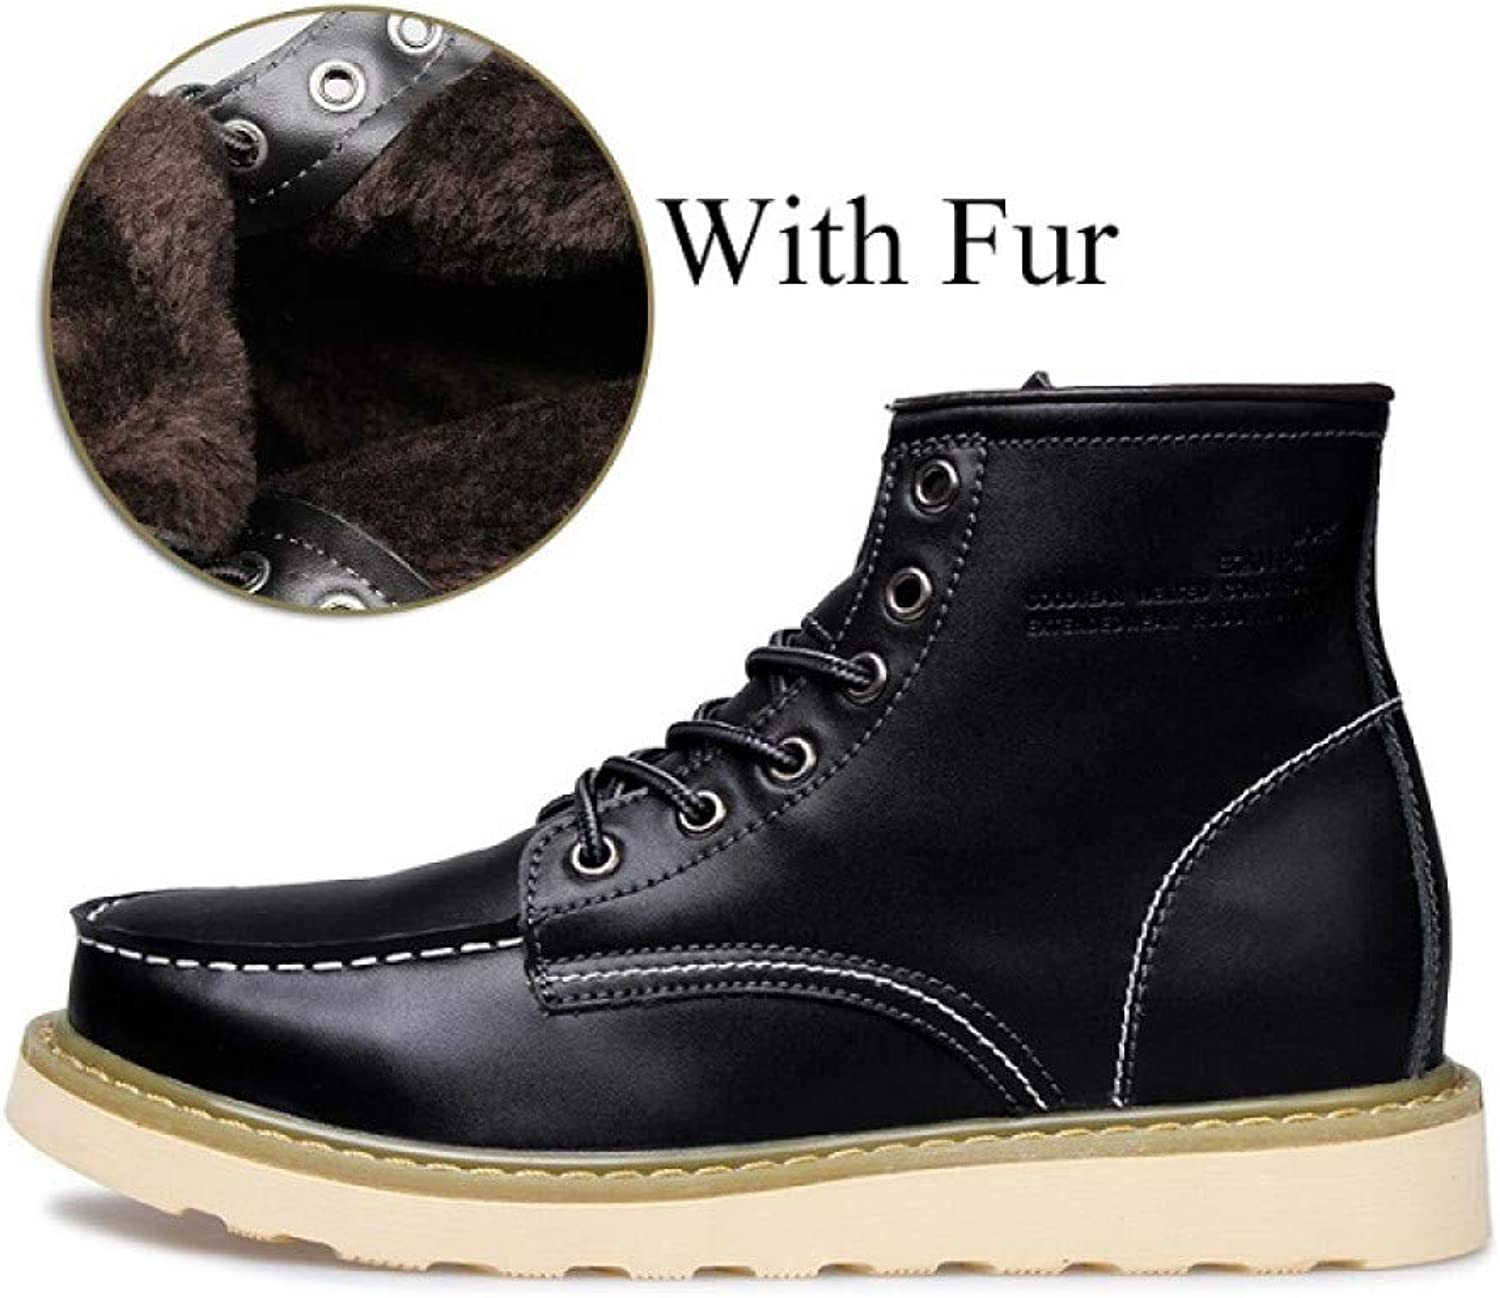 FHCGMX Genuine Leather New Winter Warm Ankle Boots Male shoes Adult Fashion Martin Boots For Men Short Plush Footwear